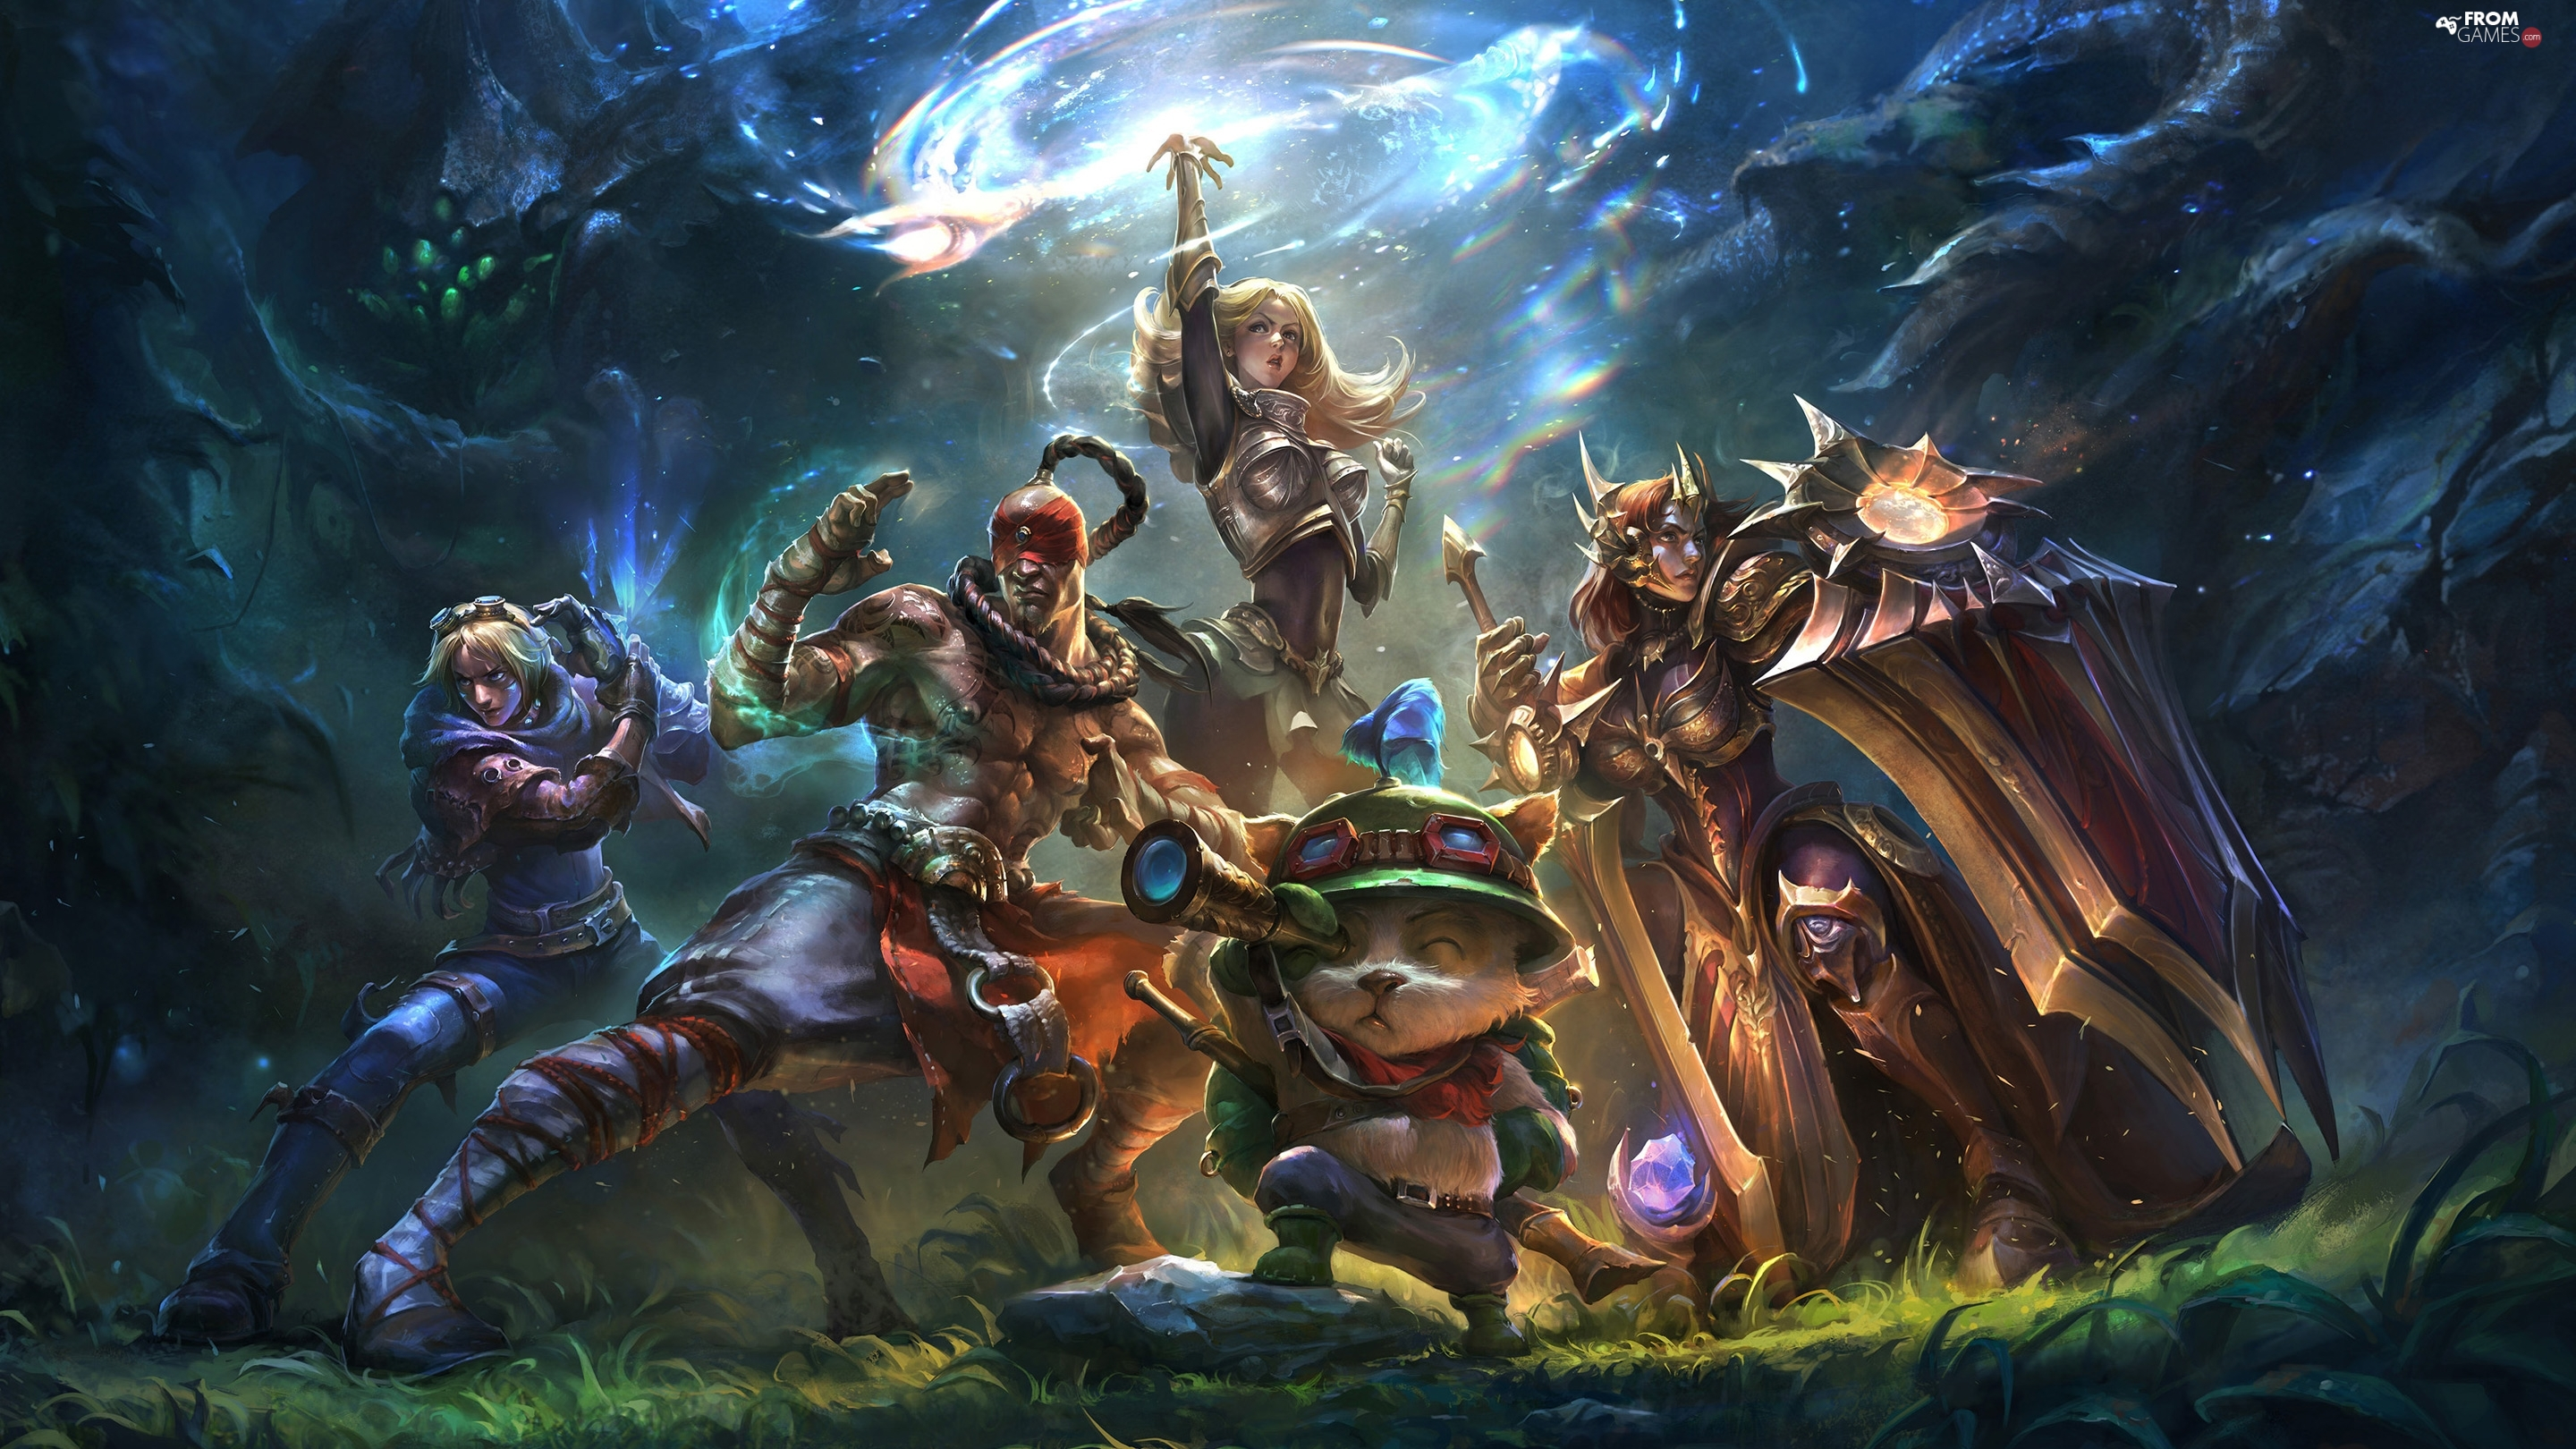 cat, magic, League Of Legends, Characters, game